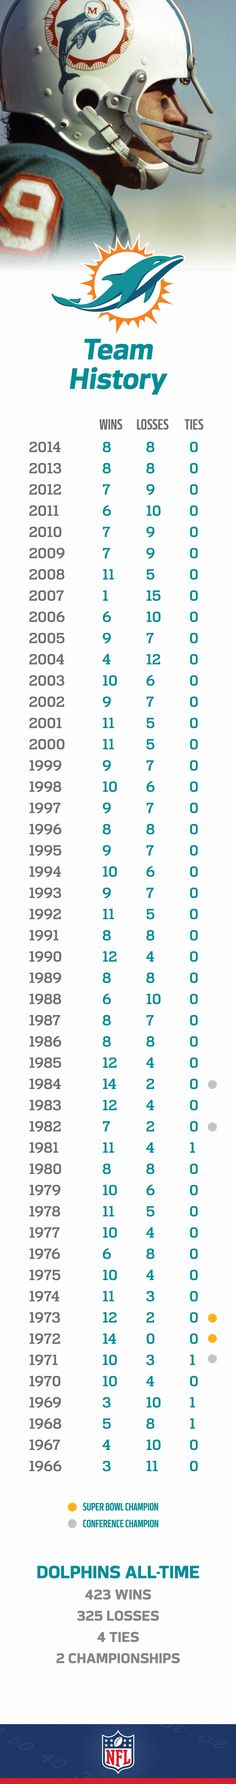 Perfection. The Miami Dolphins are the only NFL team that can say they've had a perfect season when they went undefeated in 1972 capped off by a Super Bowl win.